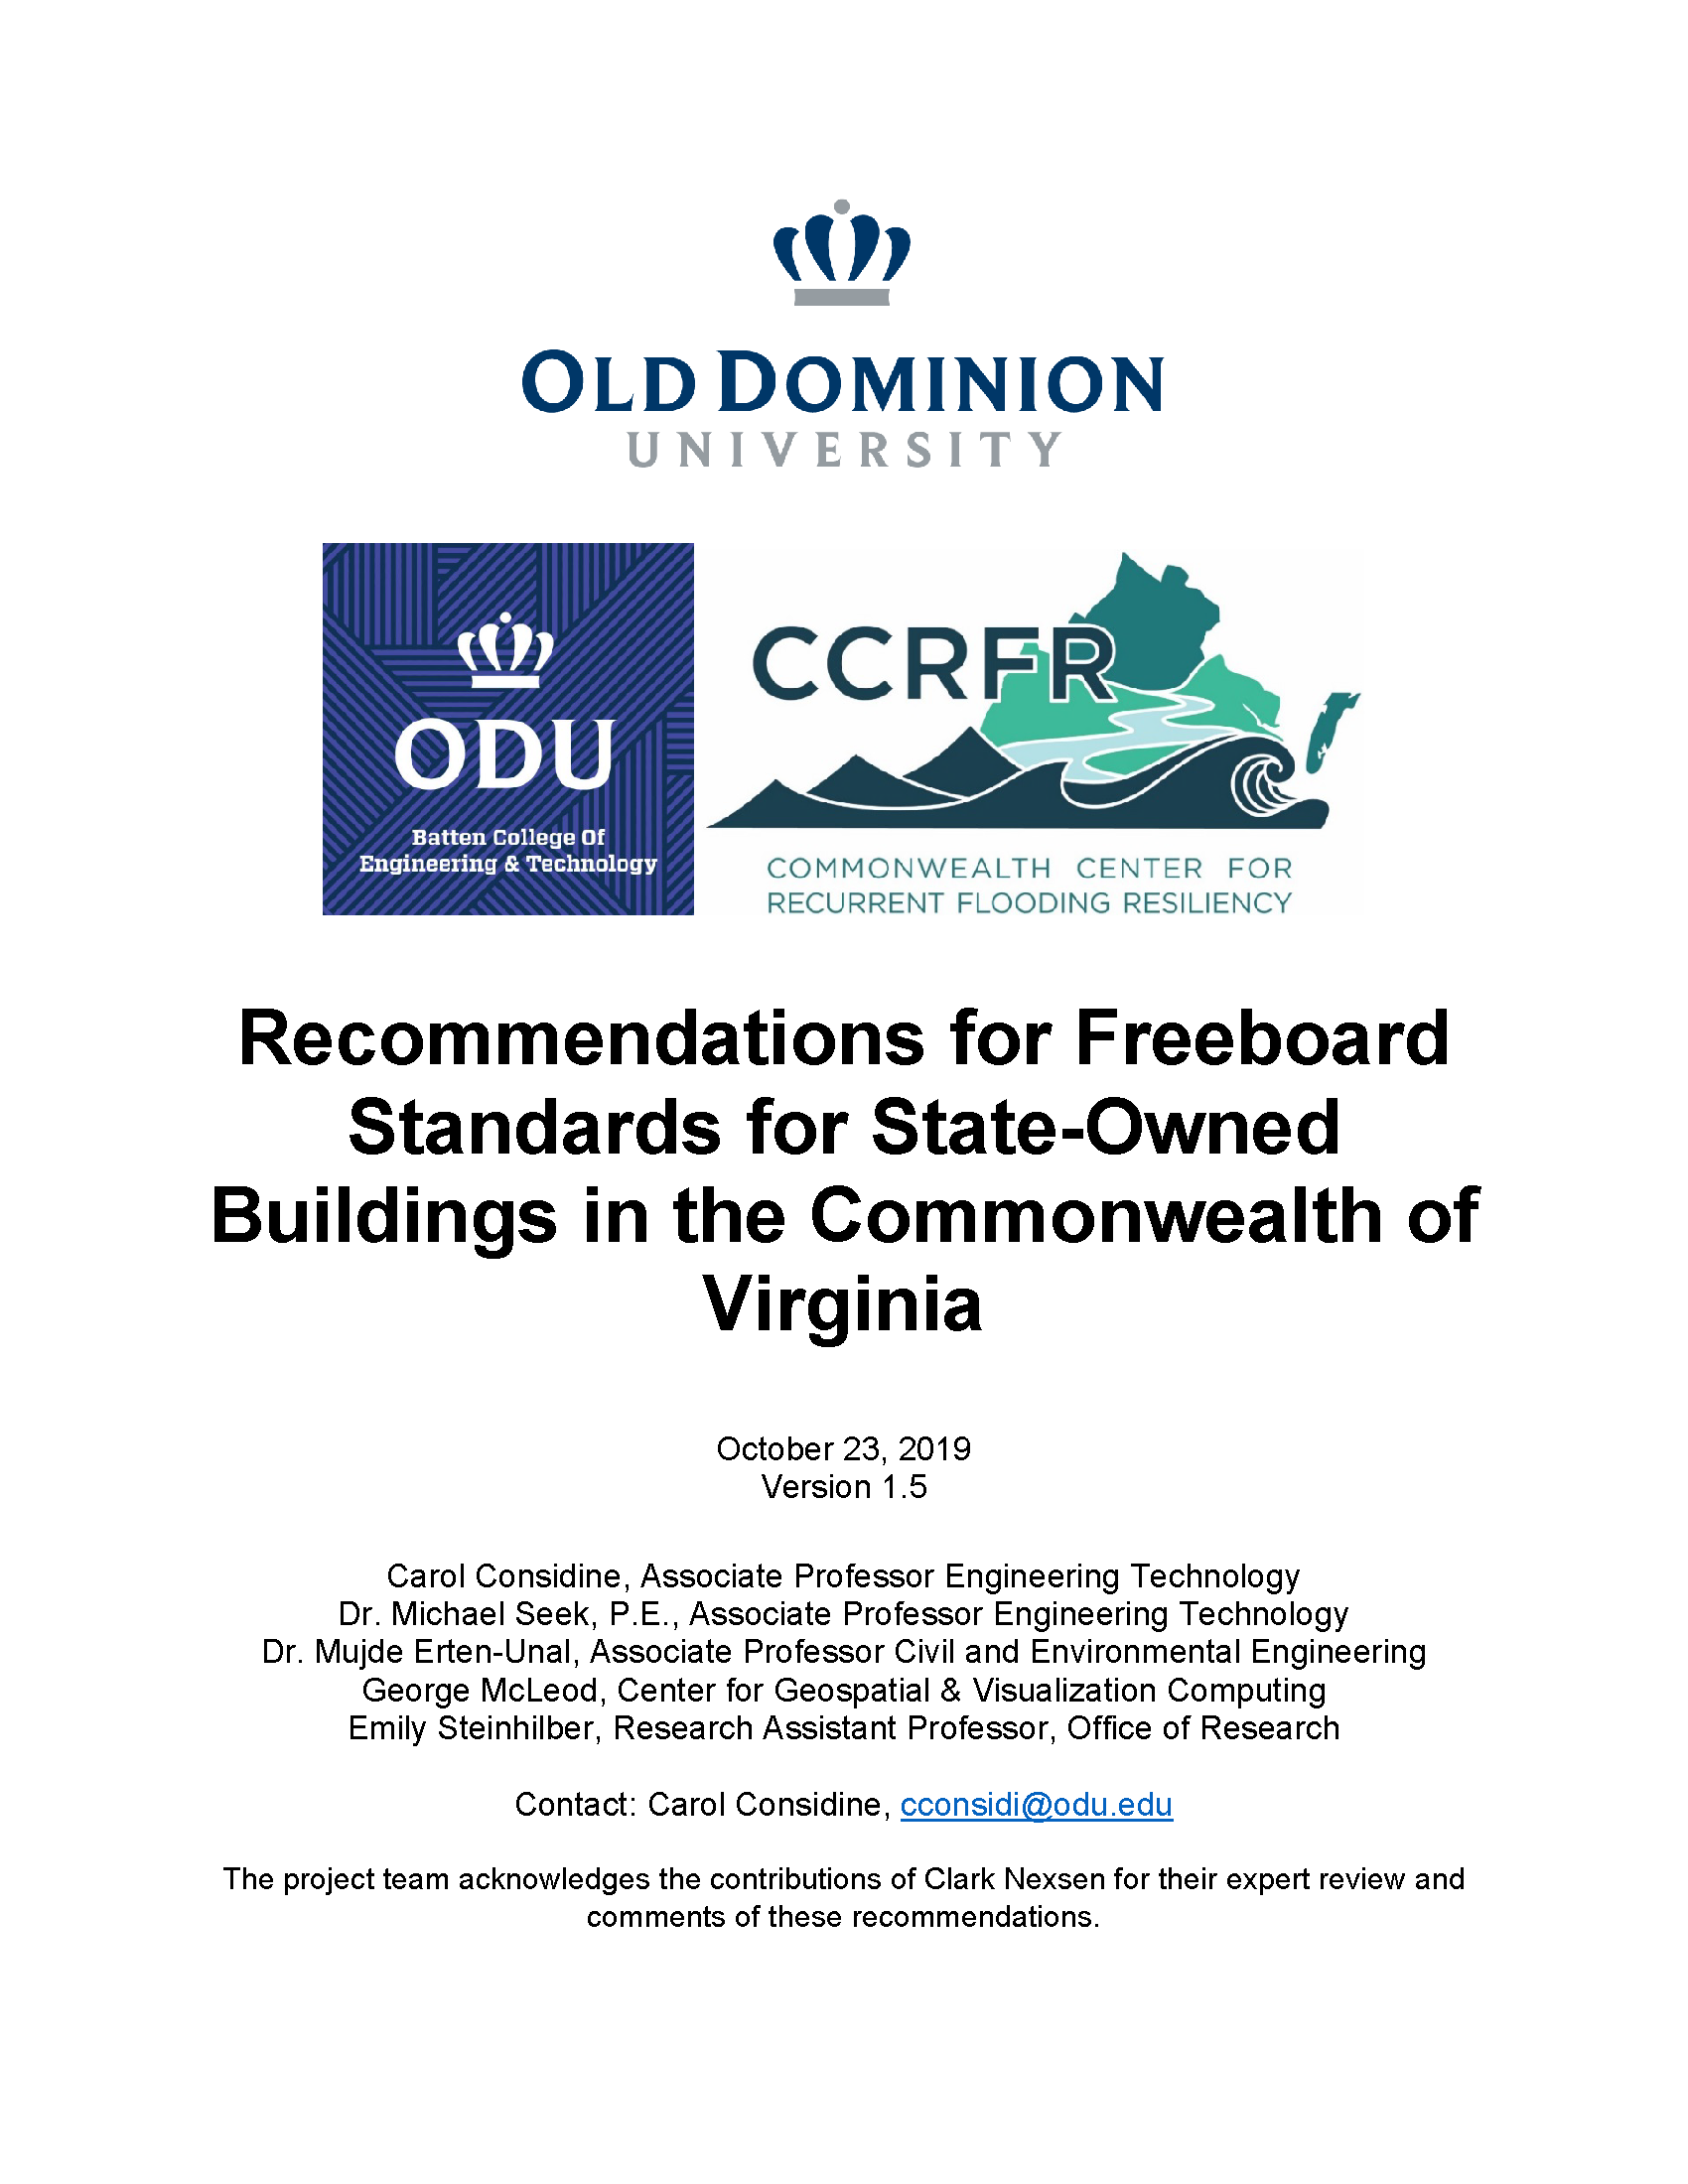 ODU Freeboard Recommendations Ver 1.5 10_23_19 w out WM 1